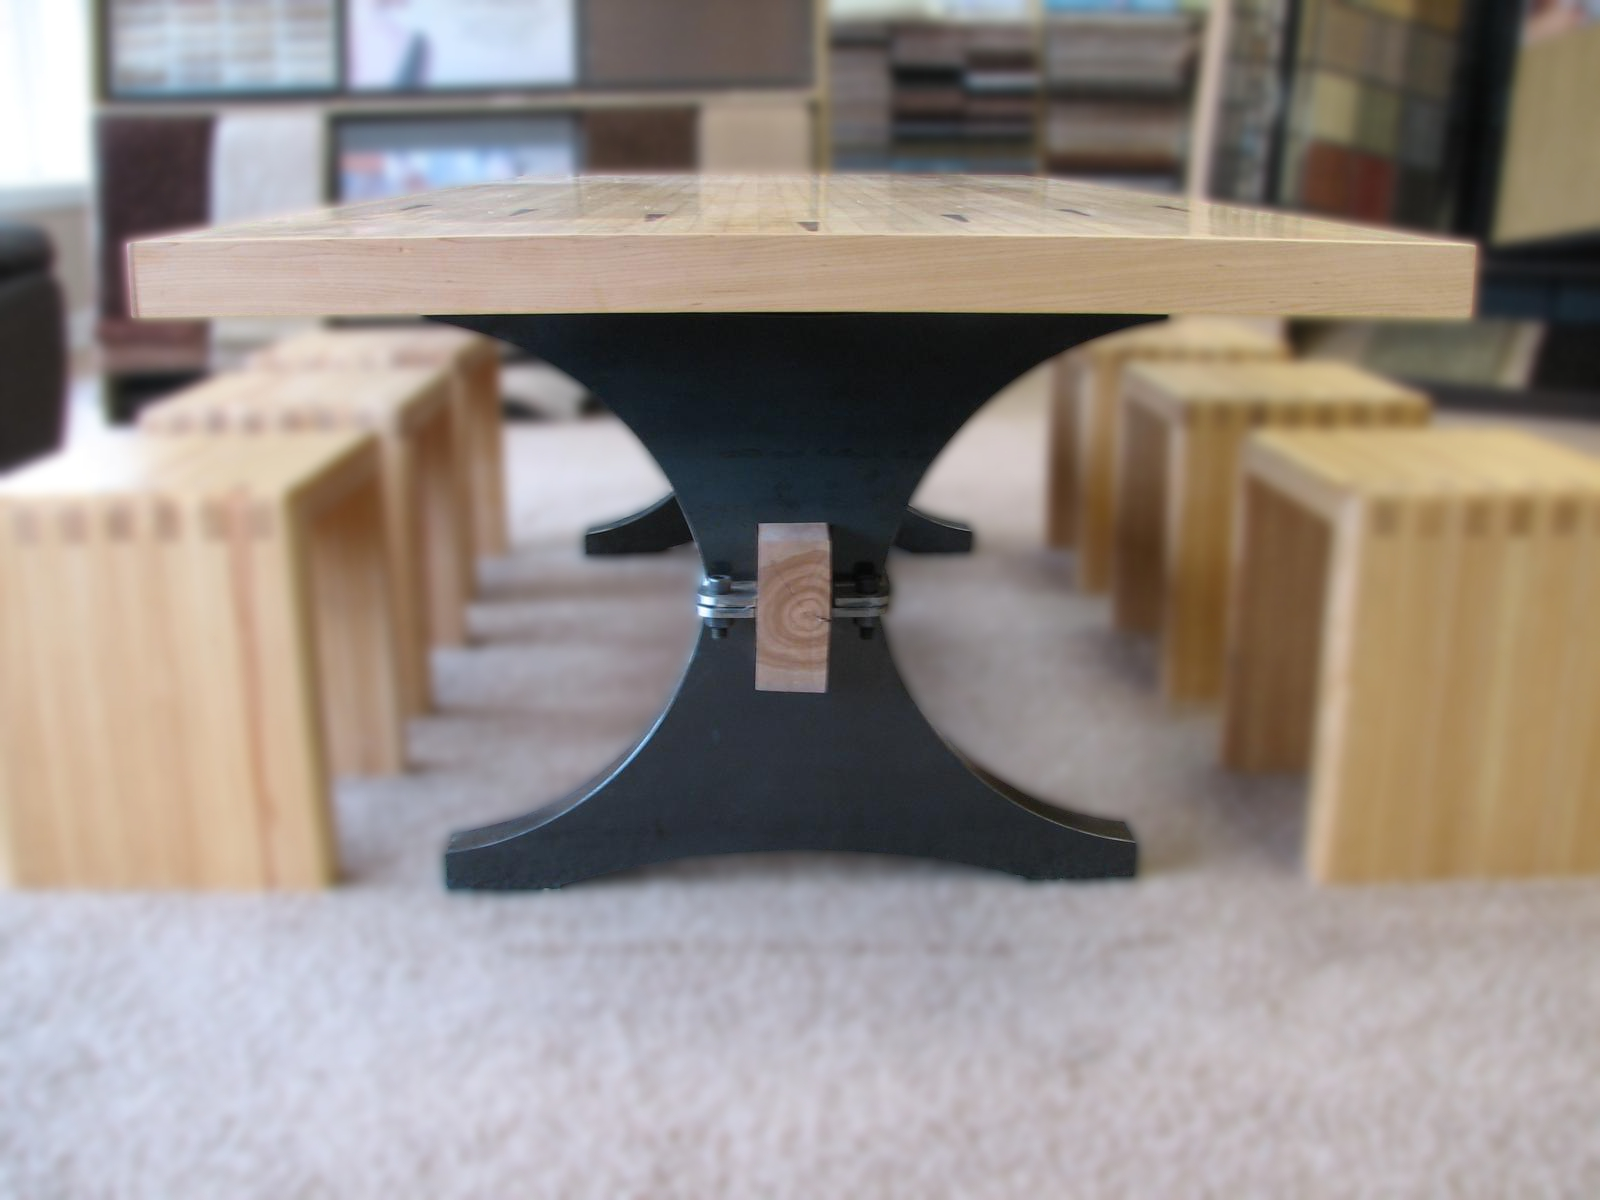 maple bowling alley archtrestle table